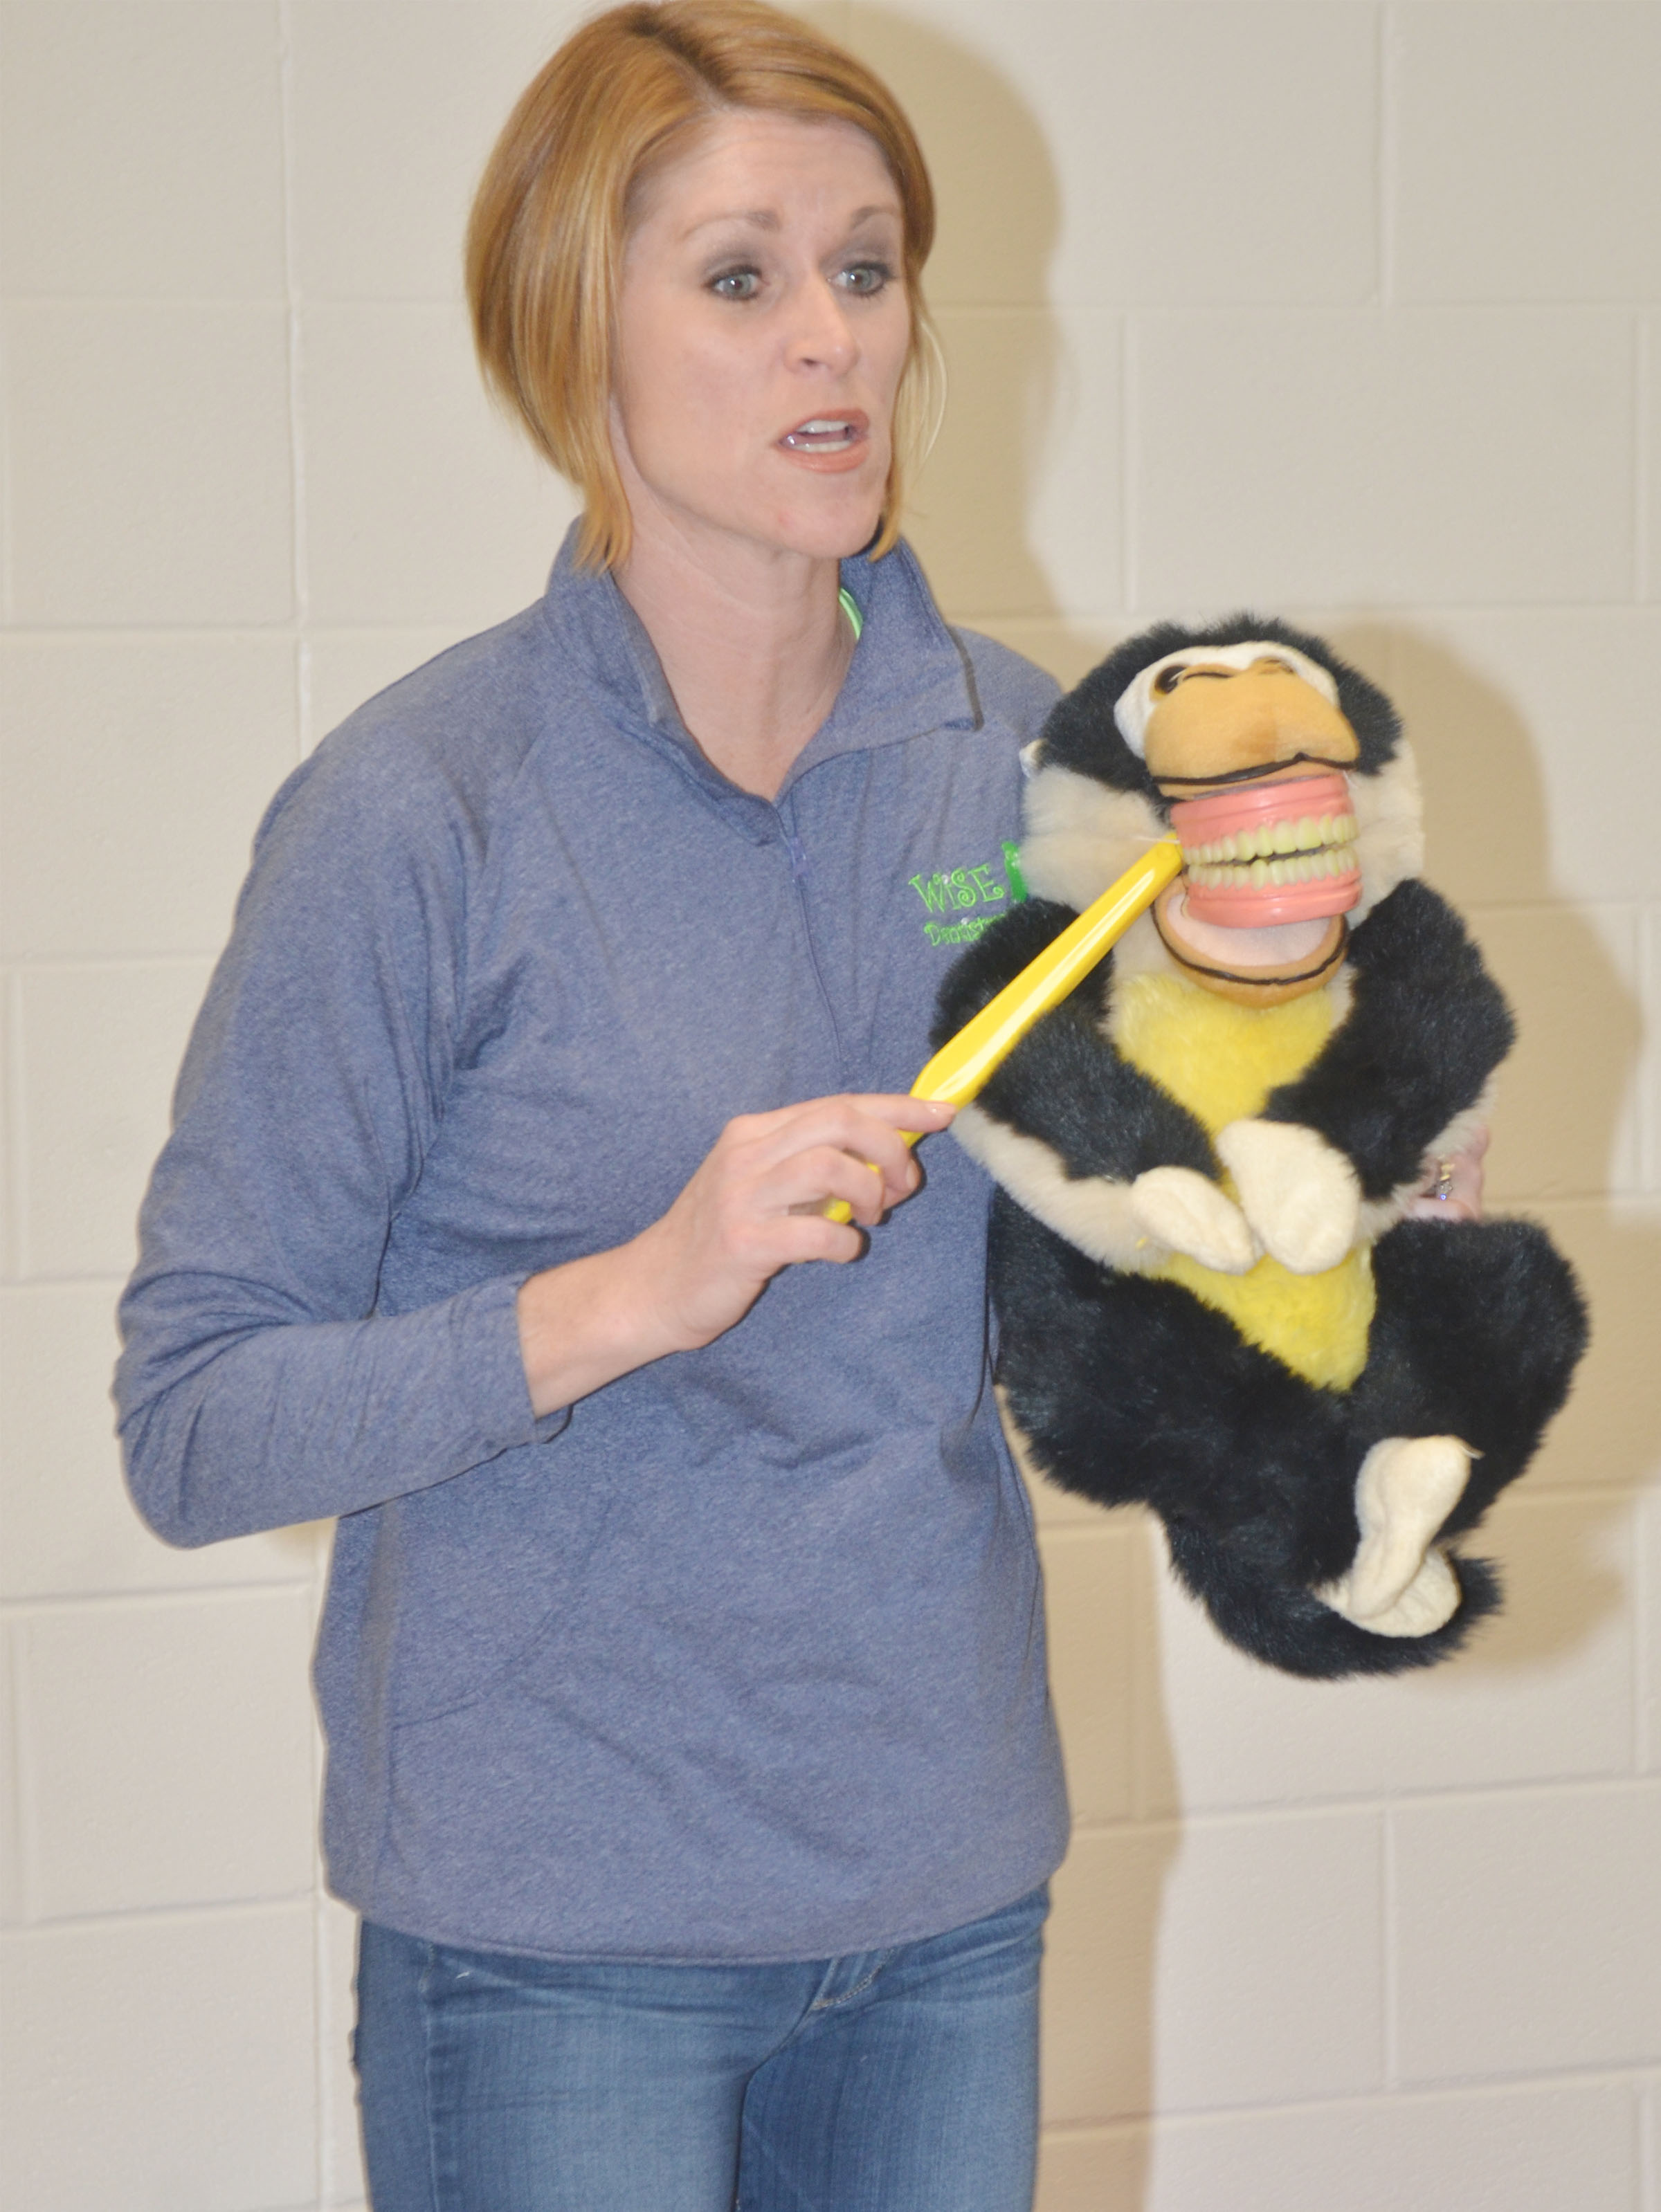 Dr. Heather Wise of Wise Dentistry for Kids demonstrates for CES Wings Express students the proper way to brush their teeth.